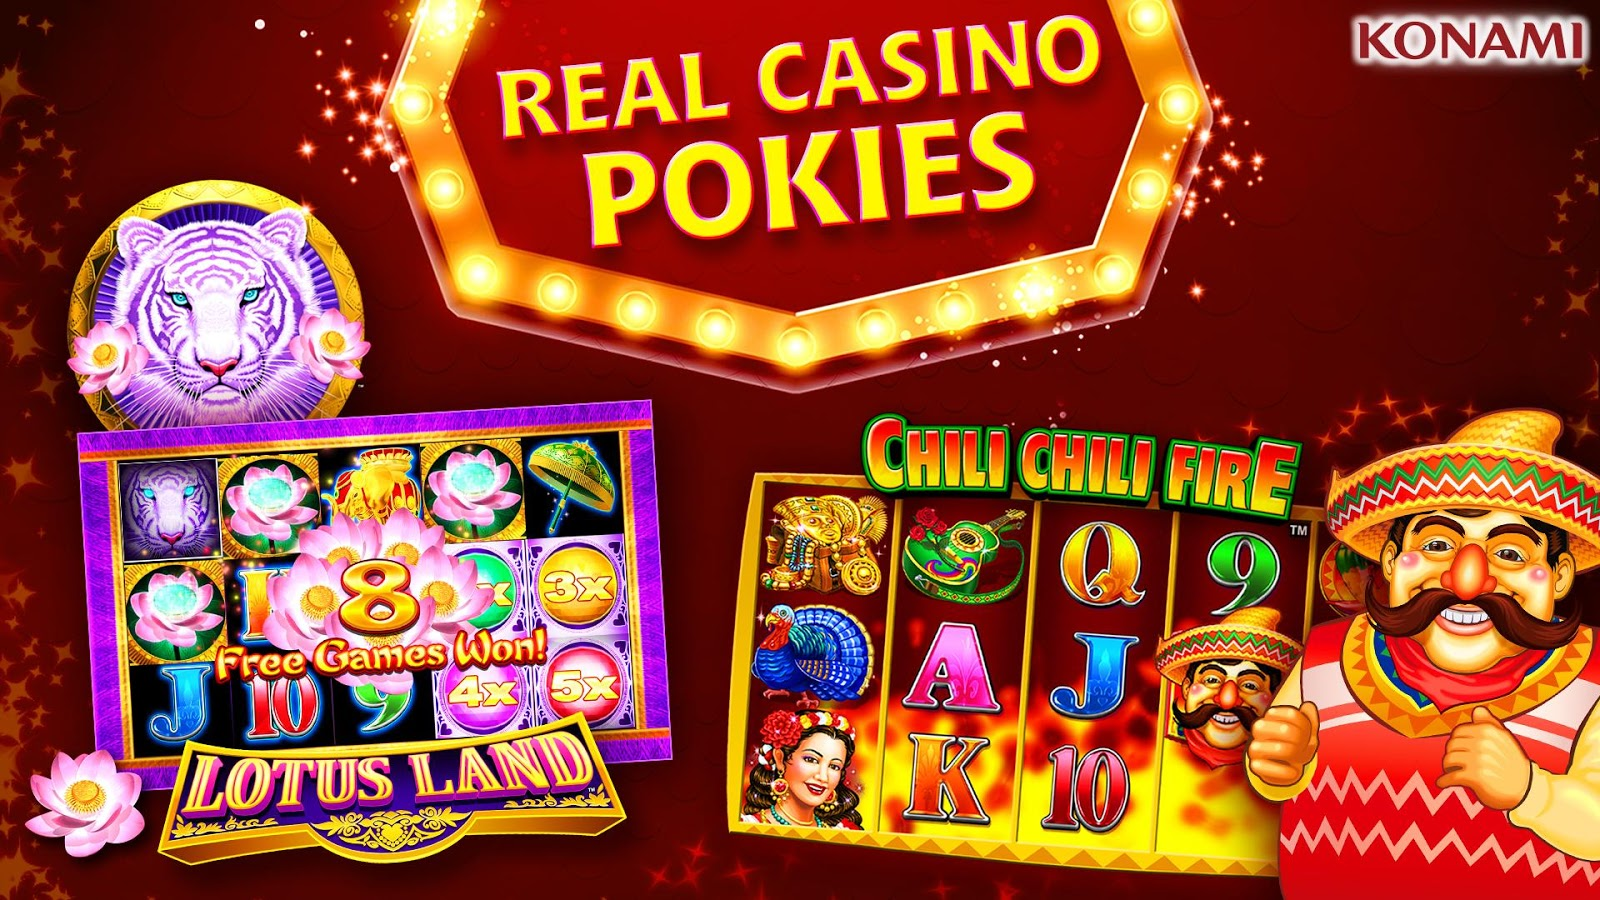 List of Aristocrat pokie machines